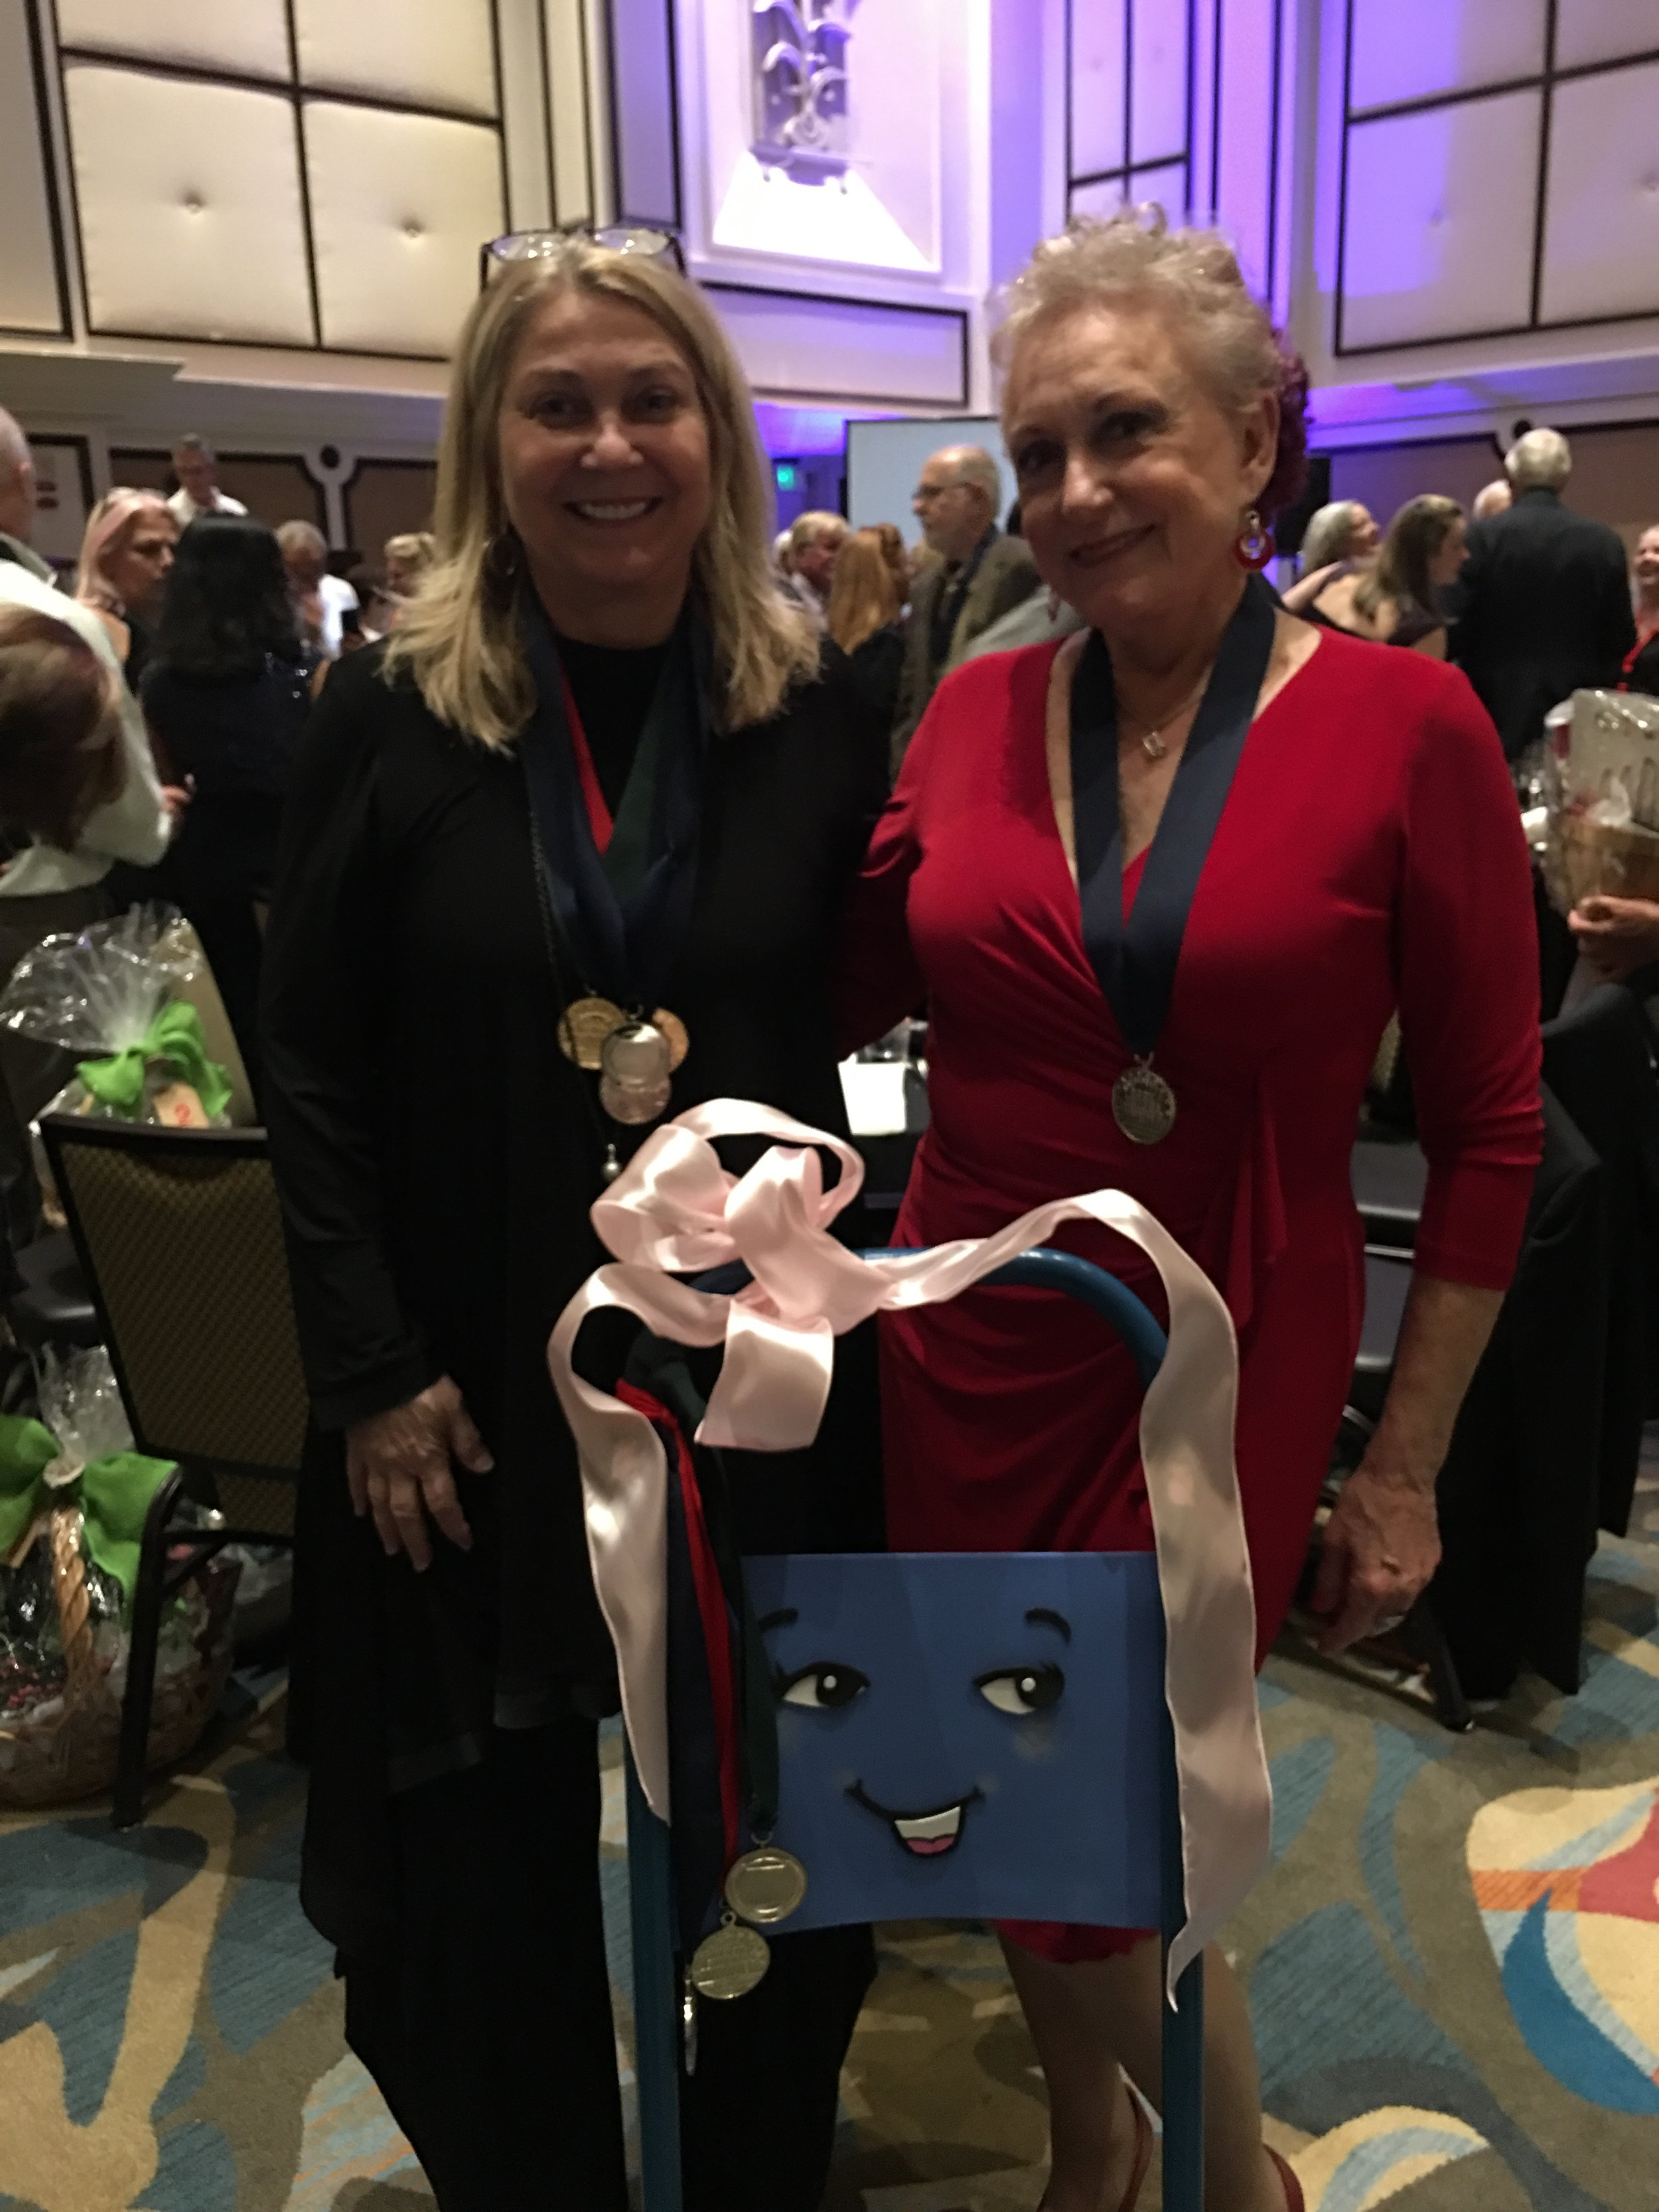 Kay Whitehouse joins Jayne Rose-Vallee for a pose with Dolly the Handcart!